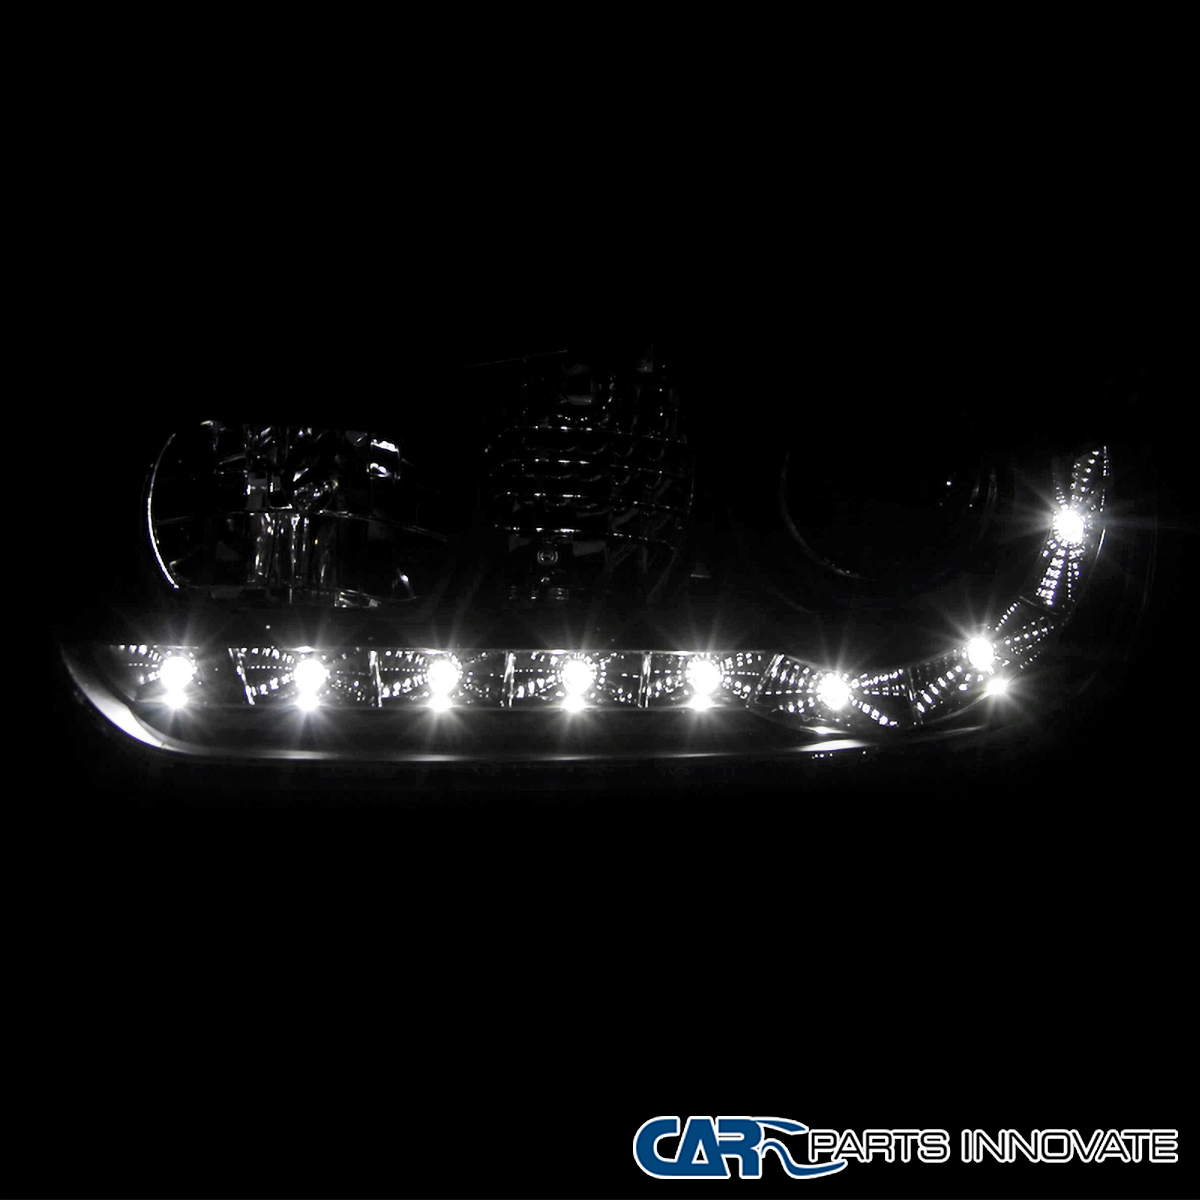 Details about For 99-06 VW Golf Mk4 GTI R32 Black LED DRL Projector  Headlights+8-LED Fog Lamps